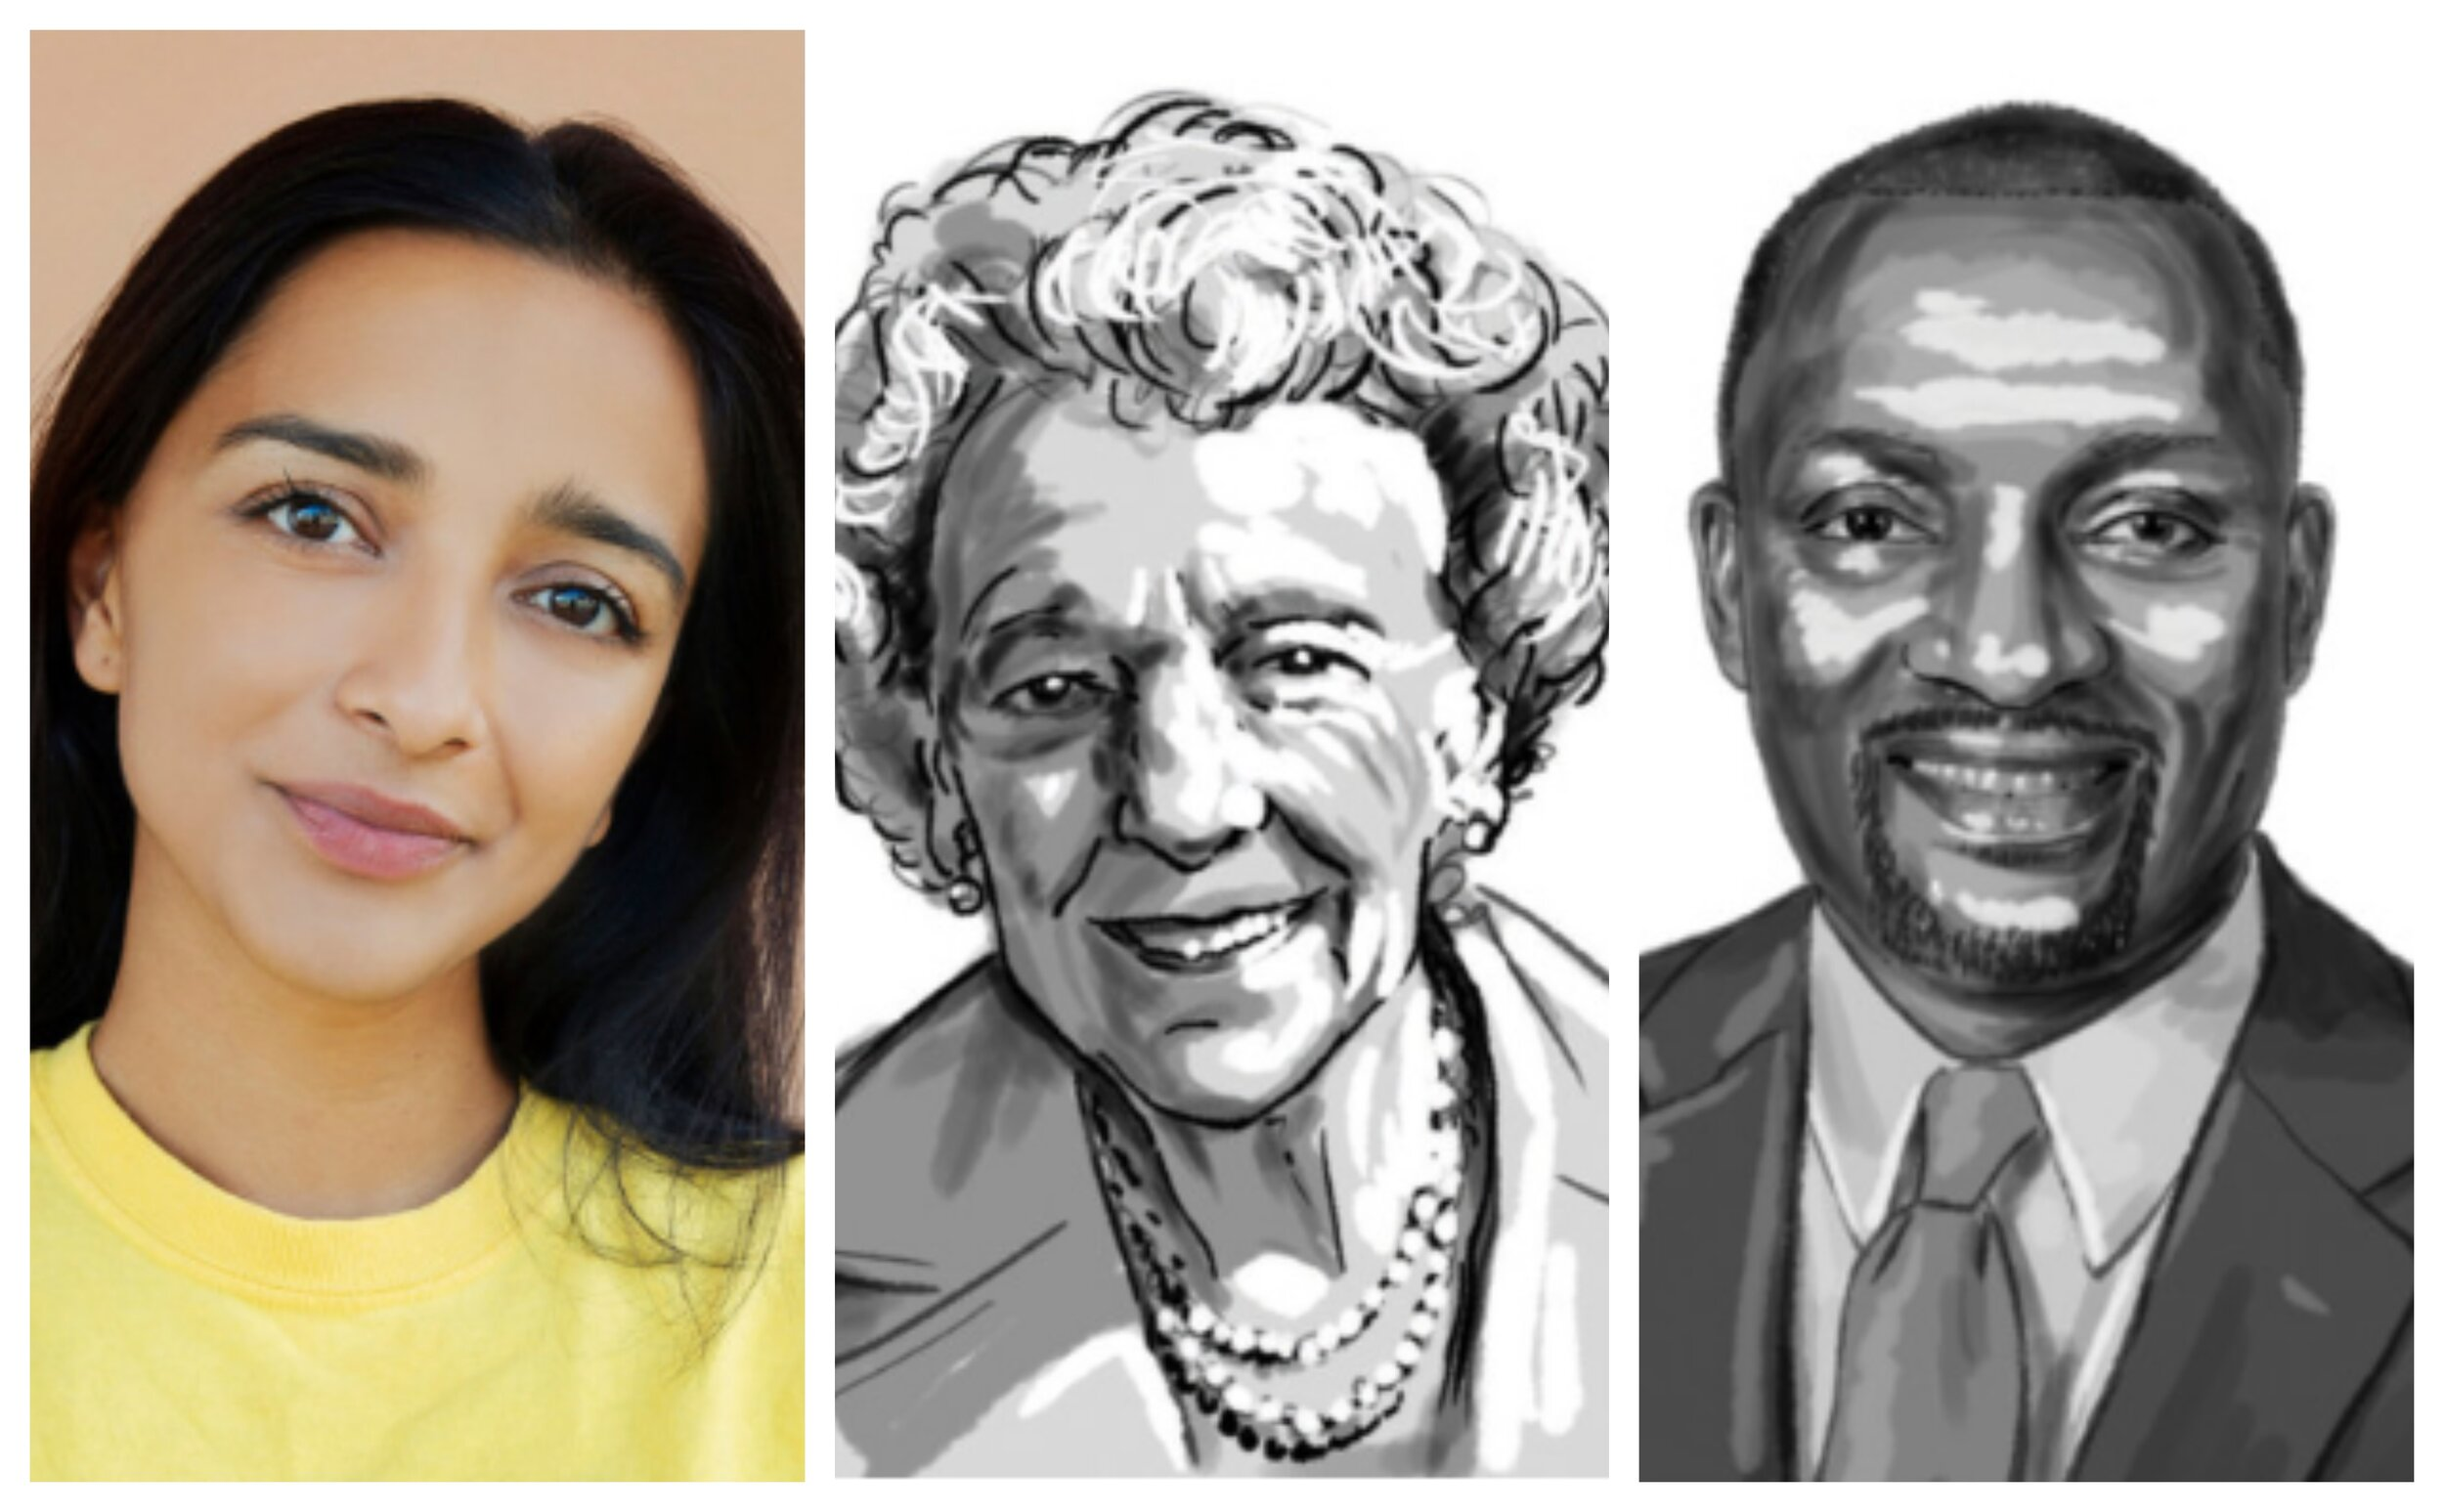 Pictured left to right, Tara Raghuveer, Anita Gorman and Mark Bedell were named three of the Kansas City area's 50 most powerful people by 435 Magazine.  Illustrations for 435 Magazine by Neil Jamieson, David Babcock. Photography by Samantha Levi.